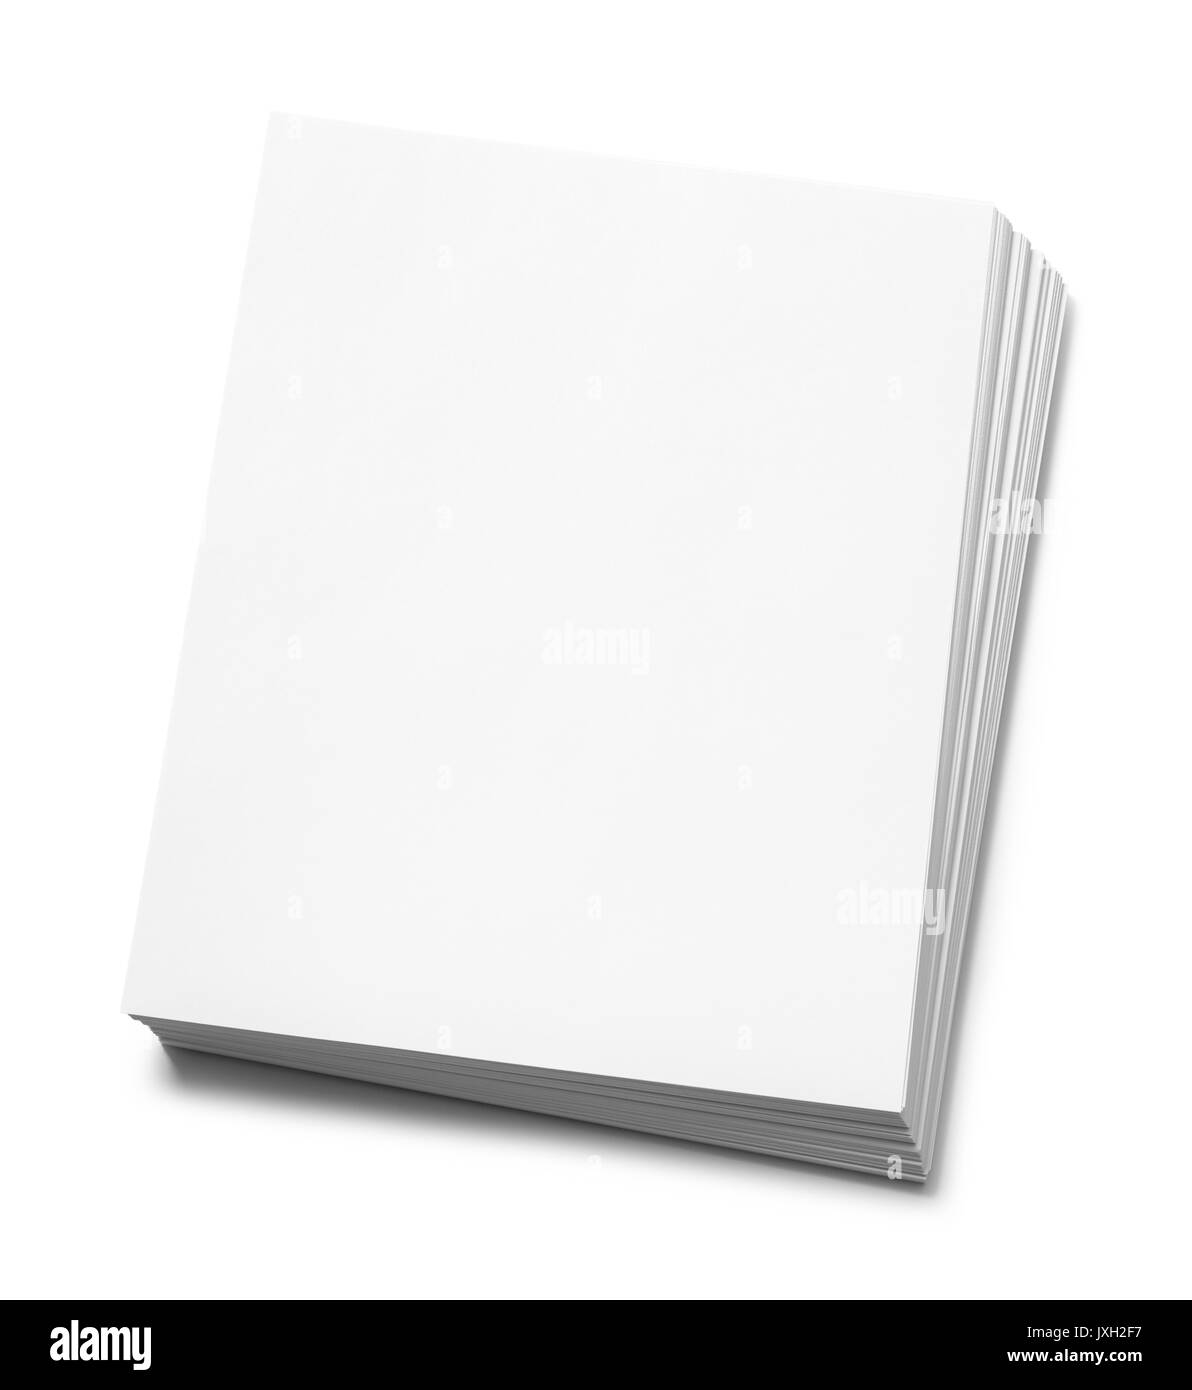 Pile of Copy Paper Isolated on White Background. - Stock Image